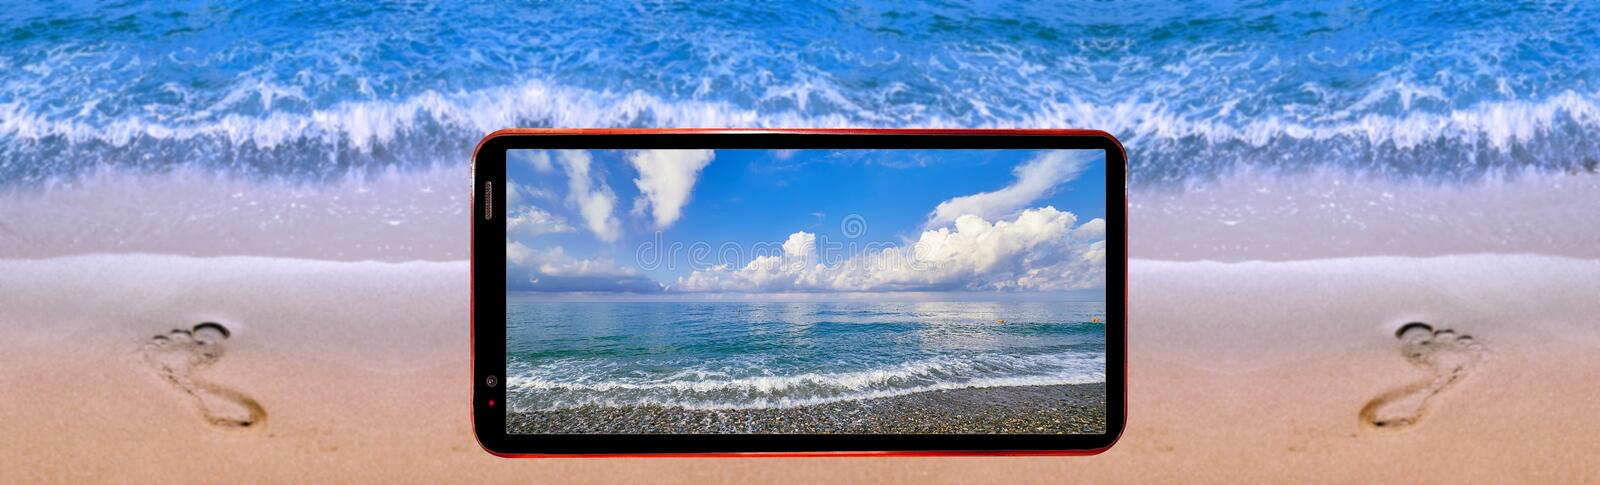 Collage picture of cell phone demonstrating nice sea landscape on screen and blurred background of water edge of sunny beach with royalty free stock photo